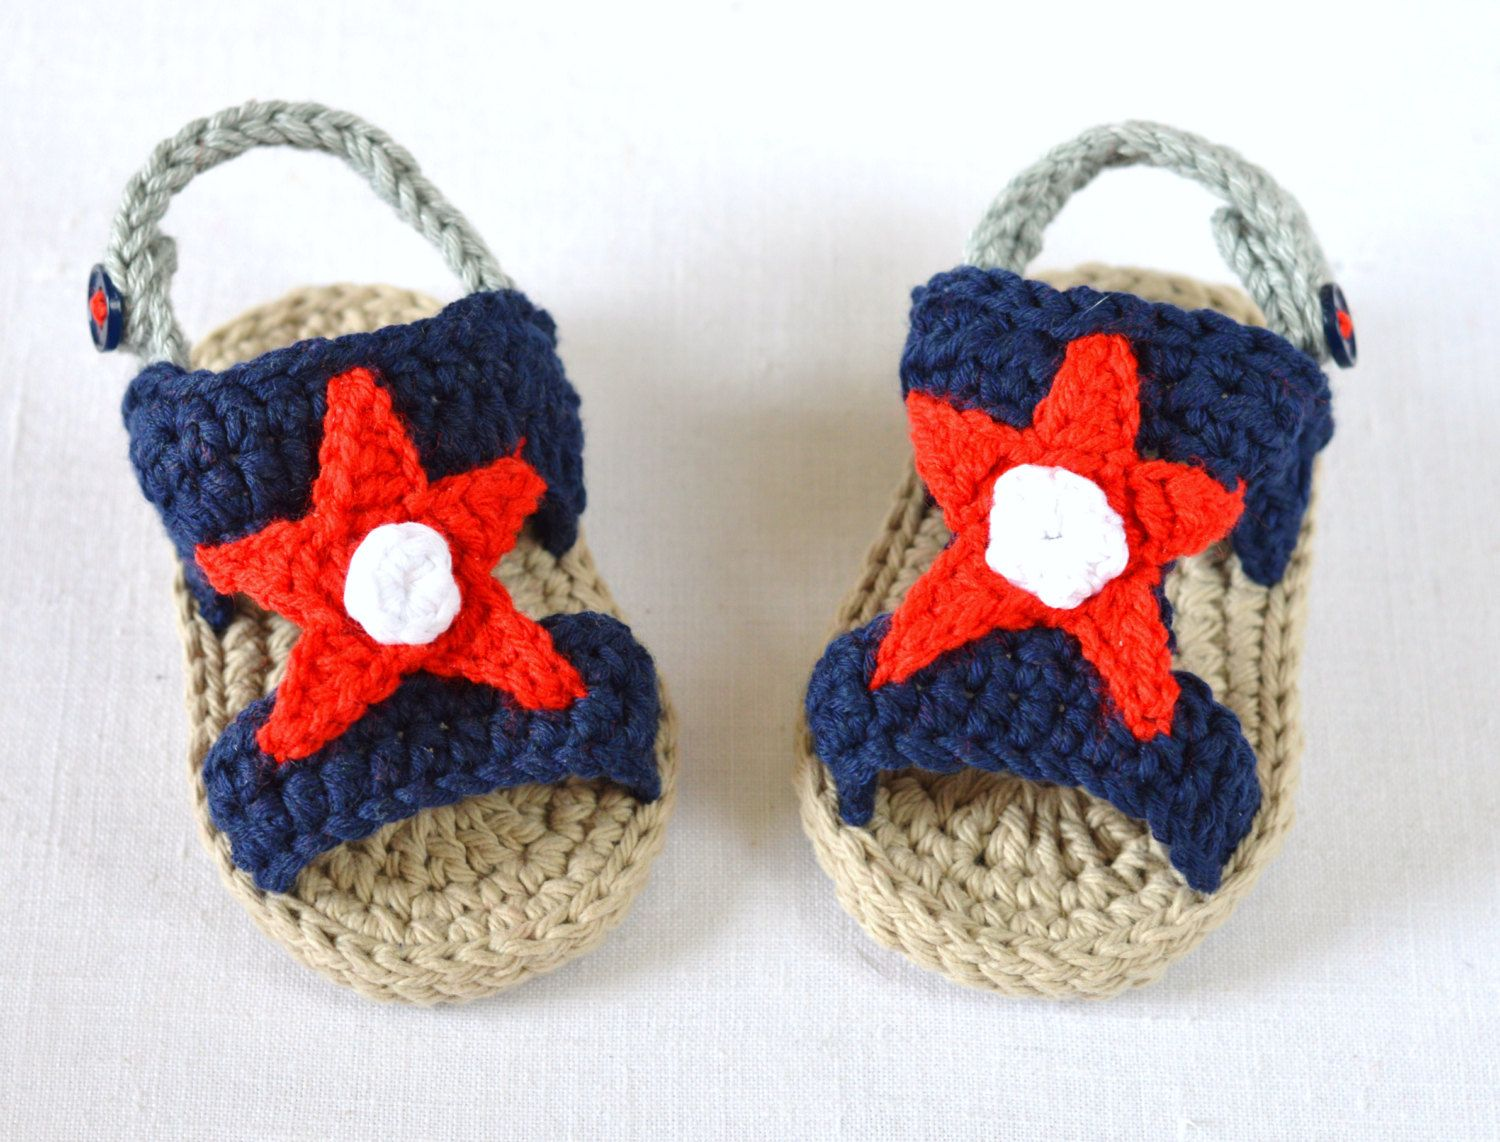 Crochet pattern baby sandals with stars instructions for 3 crochet pattern baby sandals with stars instructions for 3 bankloansurffo Image collections